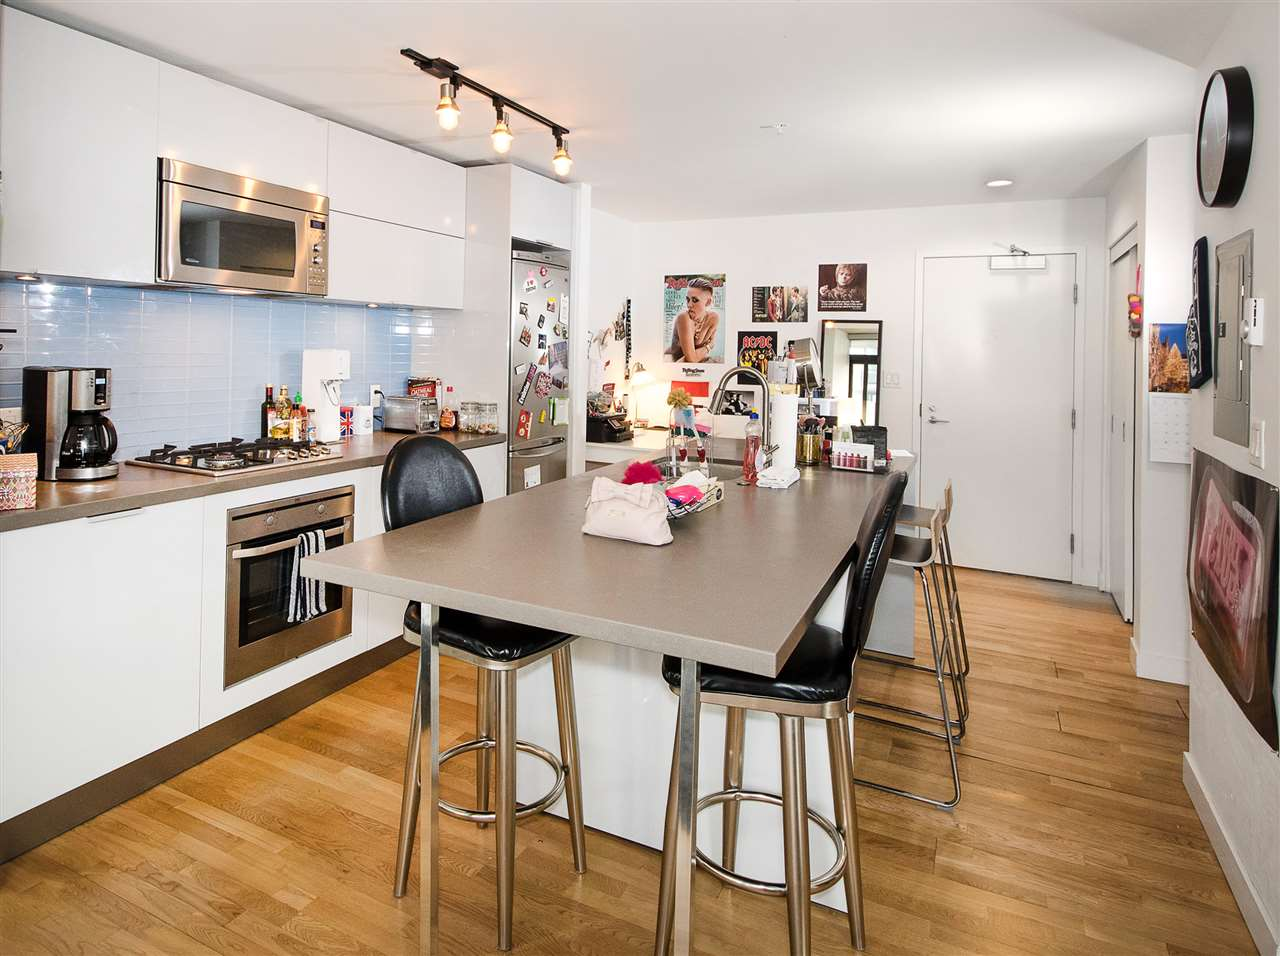 "Photo 4: PH8 108 W CORDOVA Street in Vancouver: Downtown VW Condo for sale in ""Woodwards W32"" (Vancouver West)  : MLS(r) # R2131580"